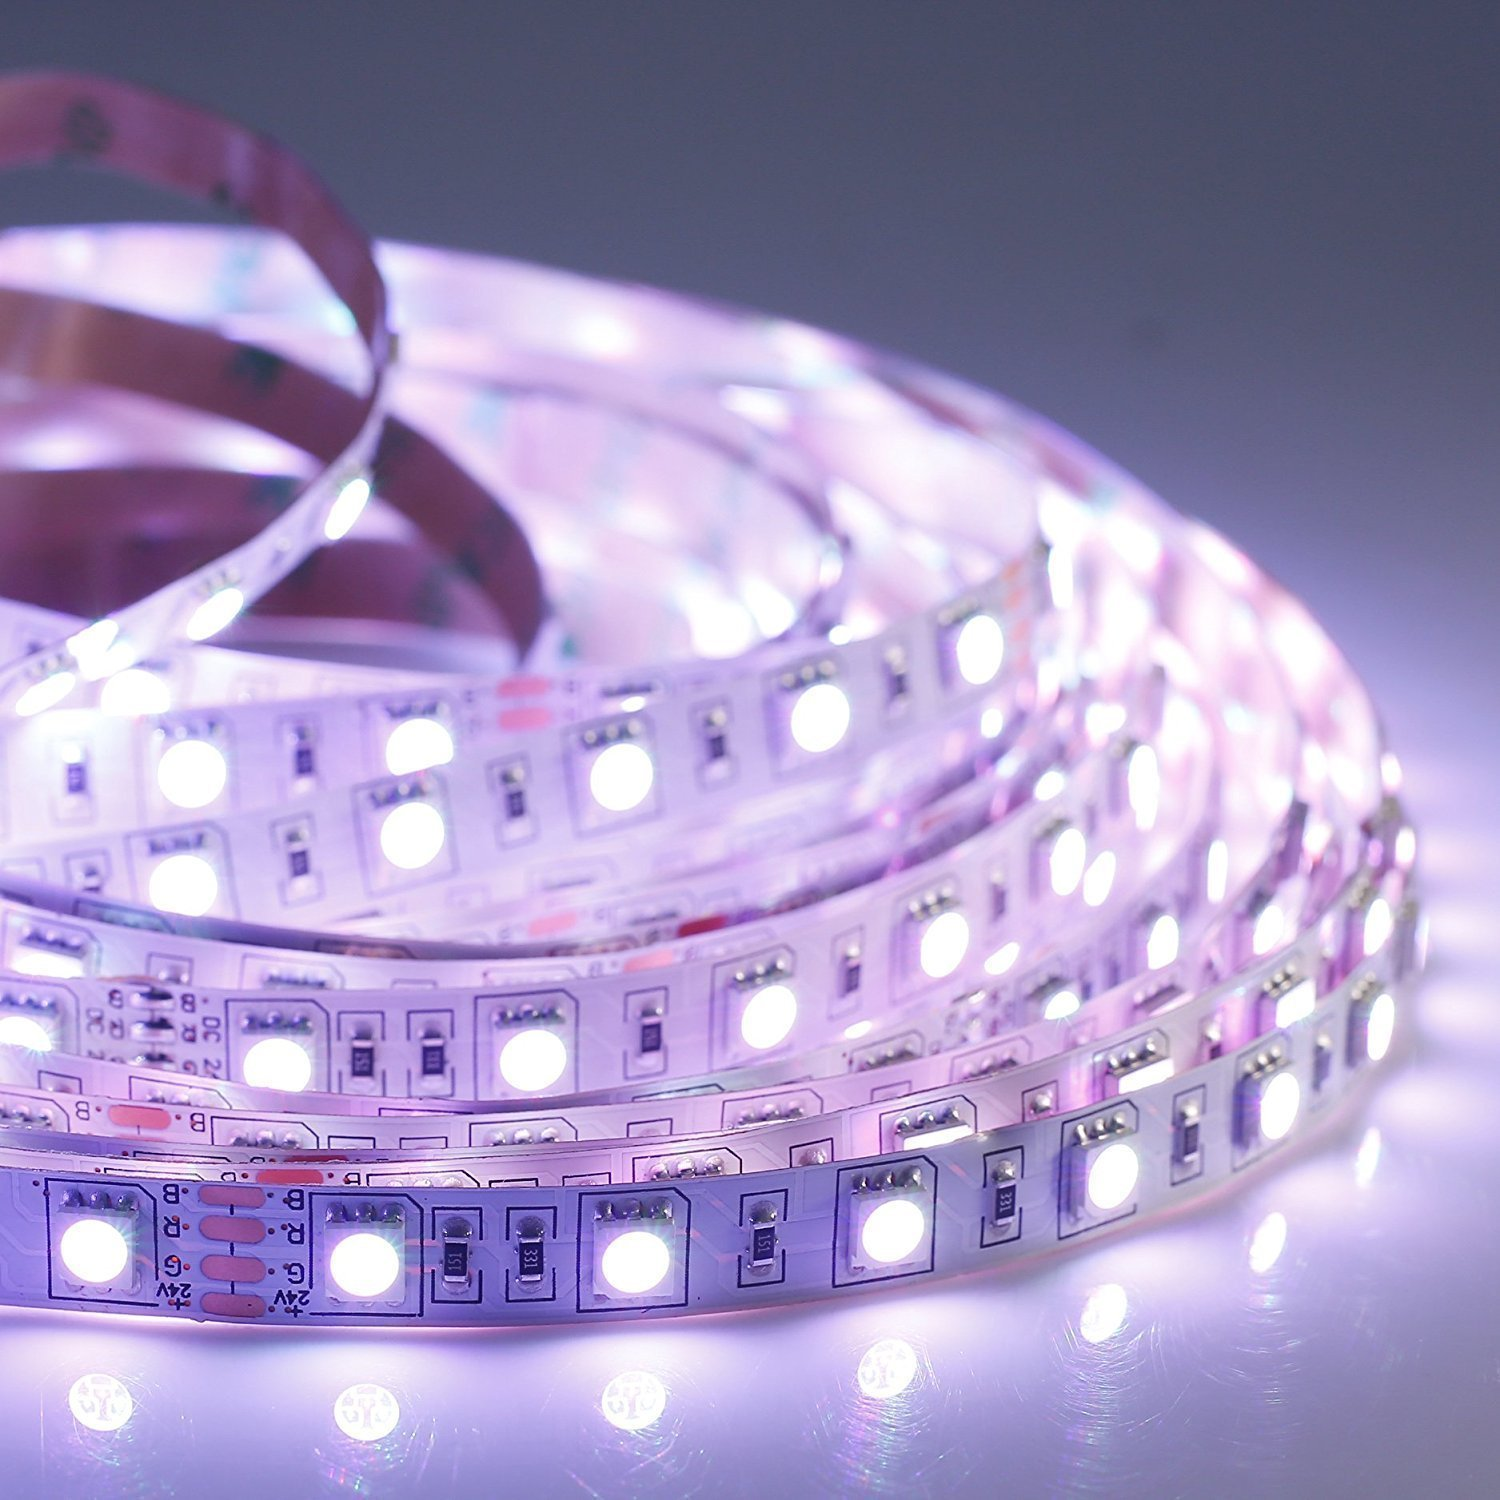 LED Strip Lights Kit, ALED Light LED Flexible Light Strip 32.8Ft/2x5M 5050 150LEDs Non-Waterproof RGB Strip Lighting with Remote DC 12V Power Supply for DIY/Christmas/Party/Decoration (2 Pack) by ALED LIGHT (Image #3)